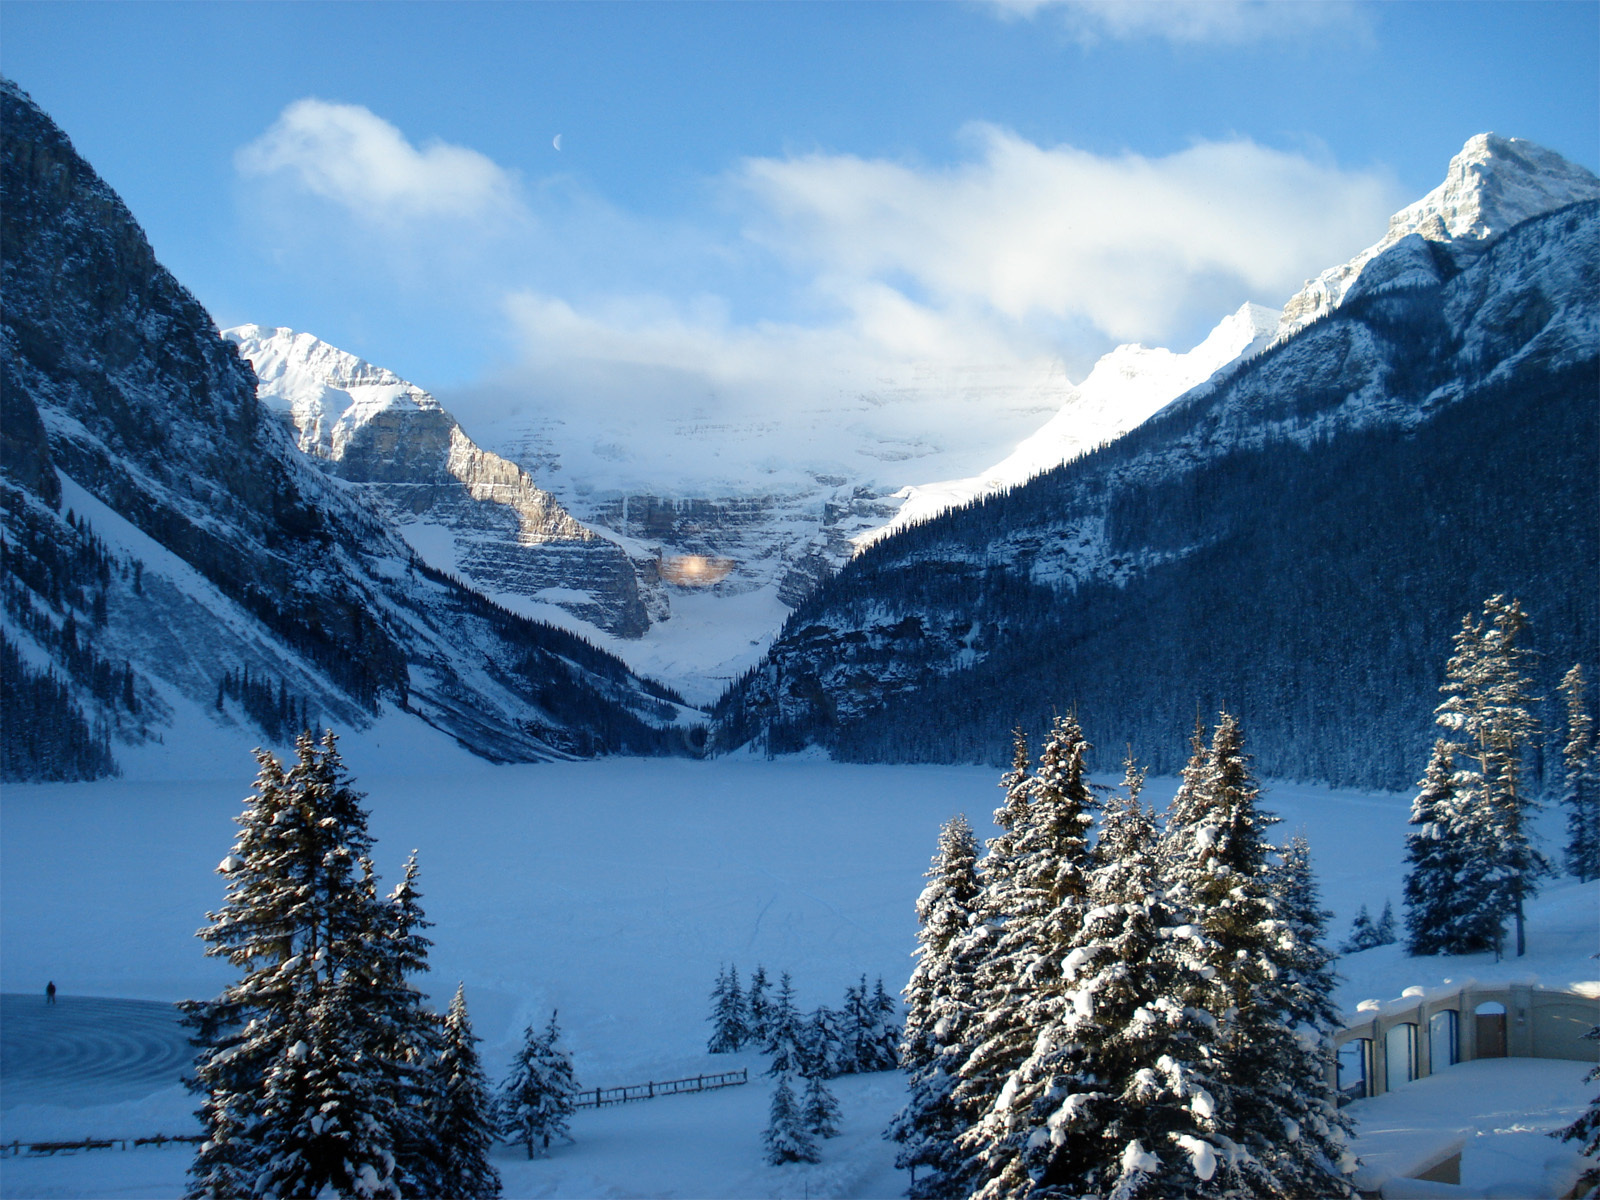 https://i1.wp.com/images2.fanpop.com/image/photos/9700000/Lake-Louise-canada-9727980-1600-1200.jpg